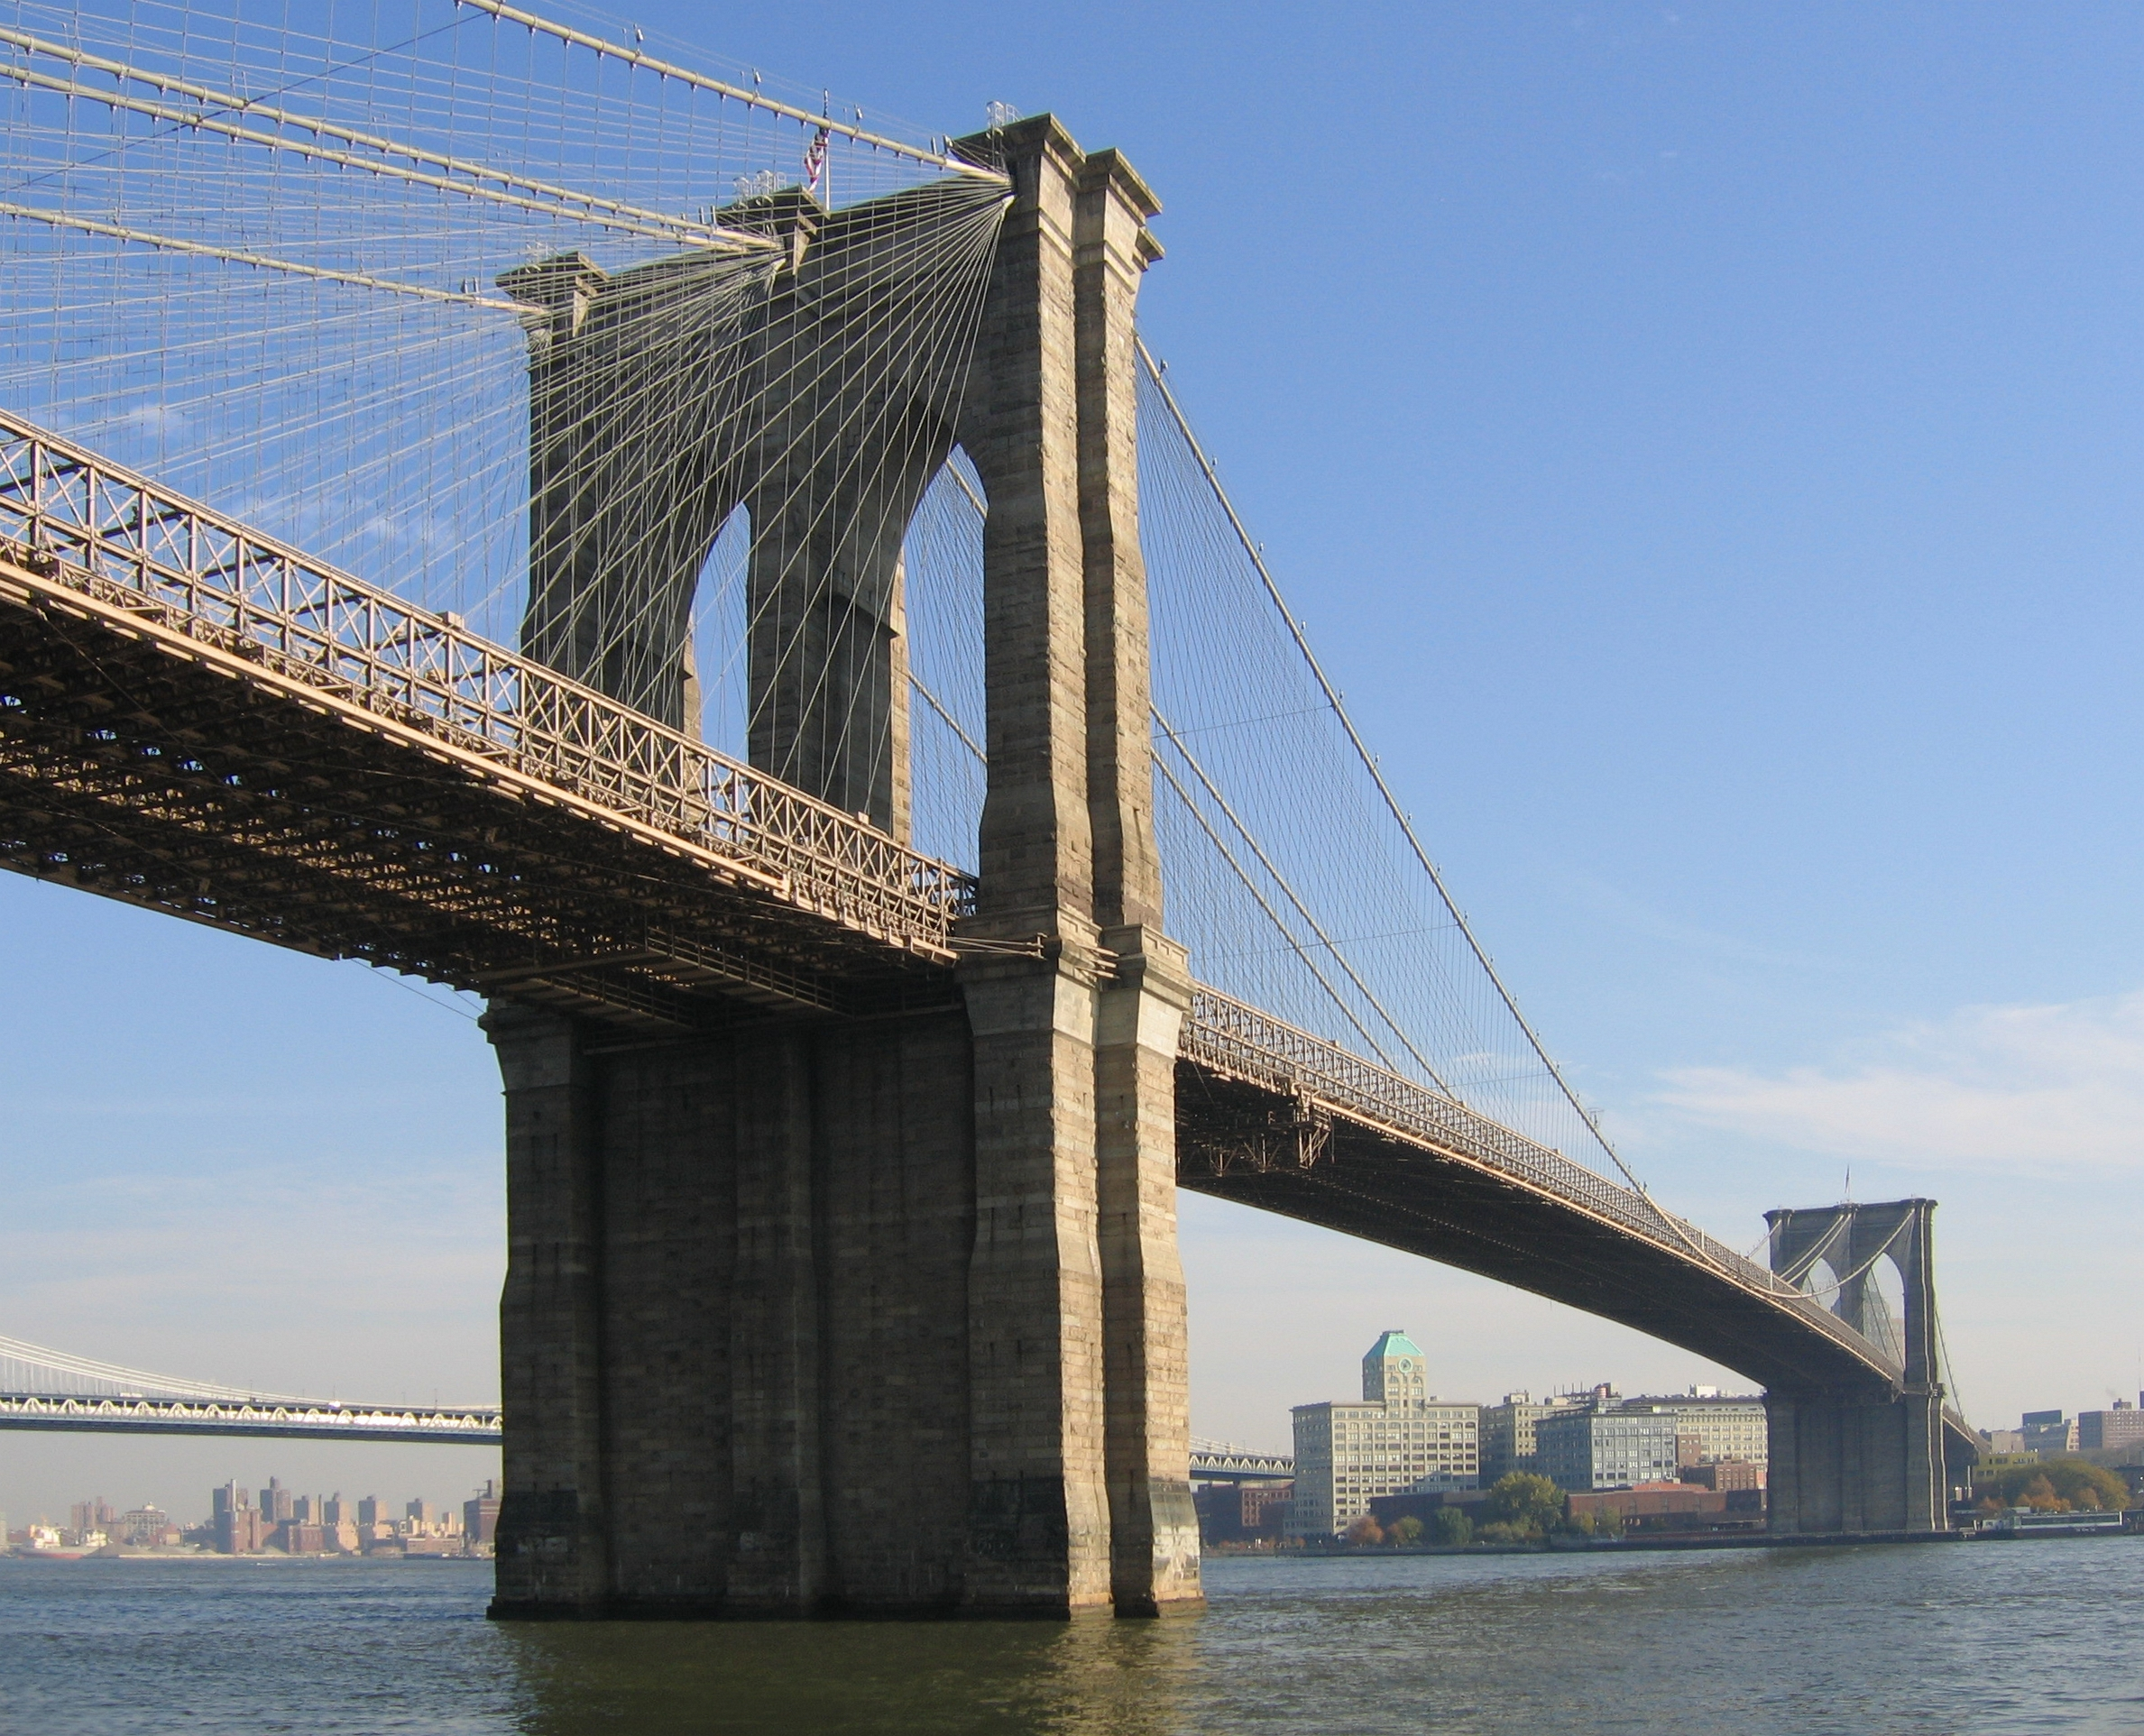 Visa and New York Times partner for a video about traveling to Brooklyn, New York.